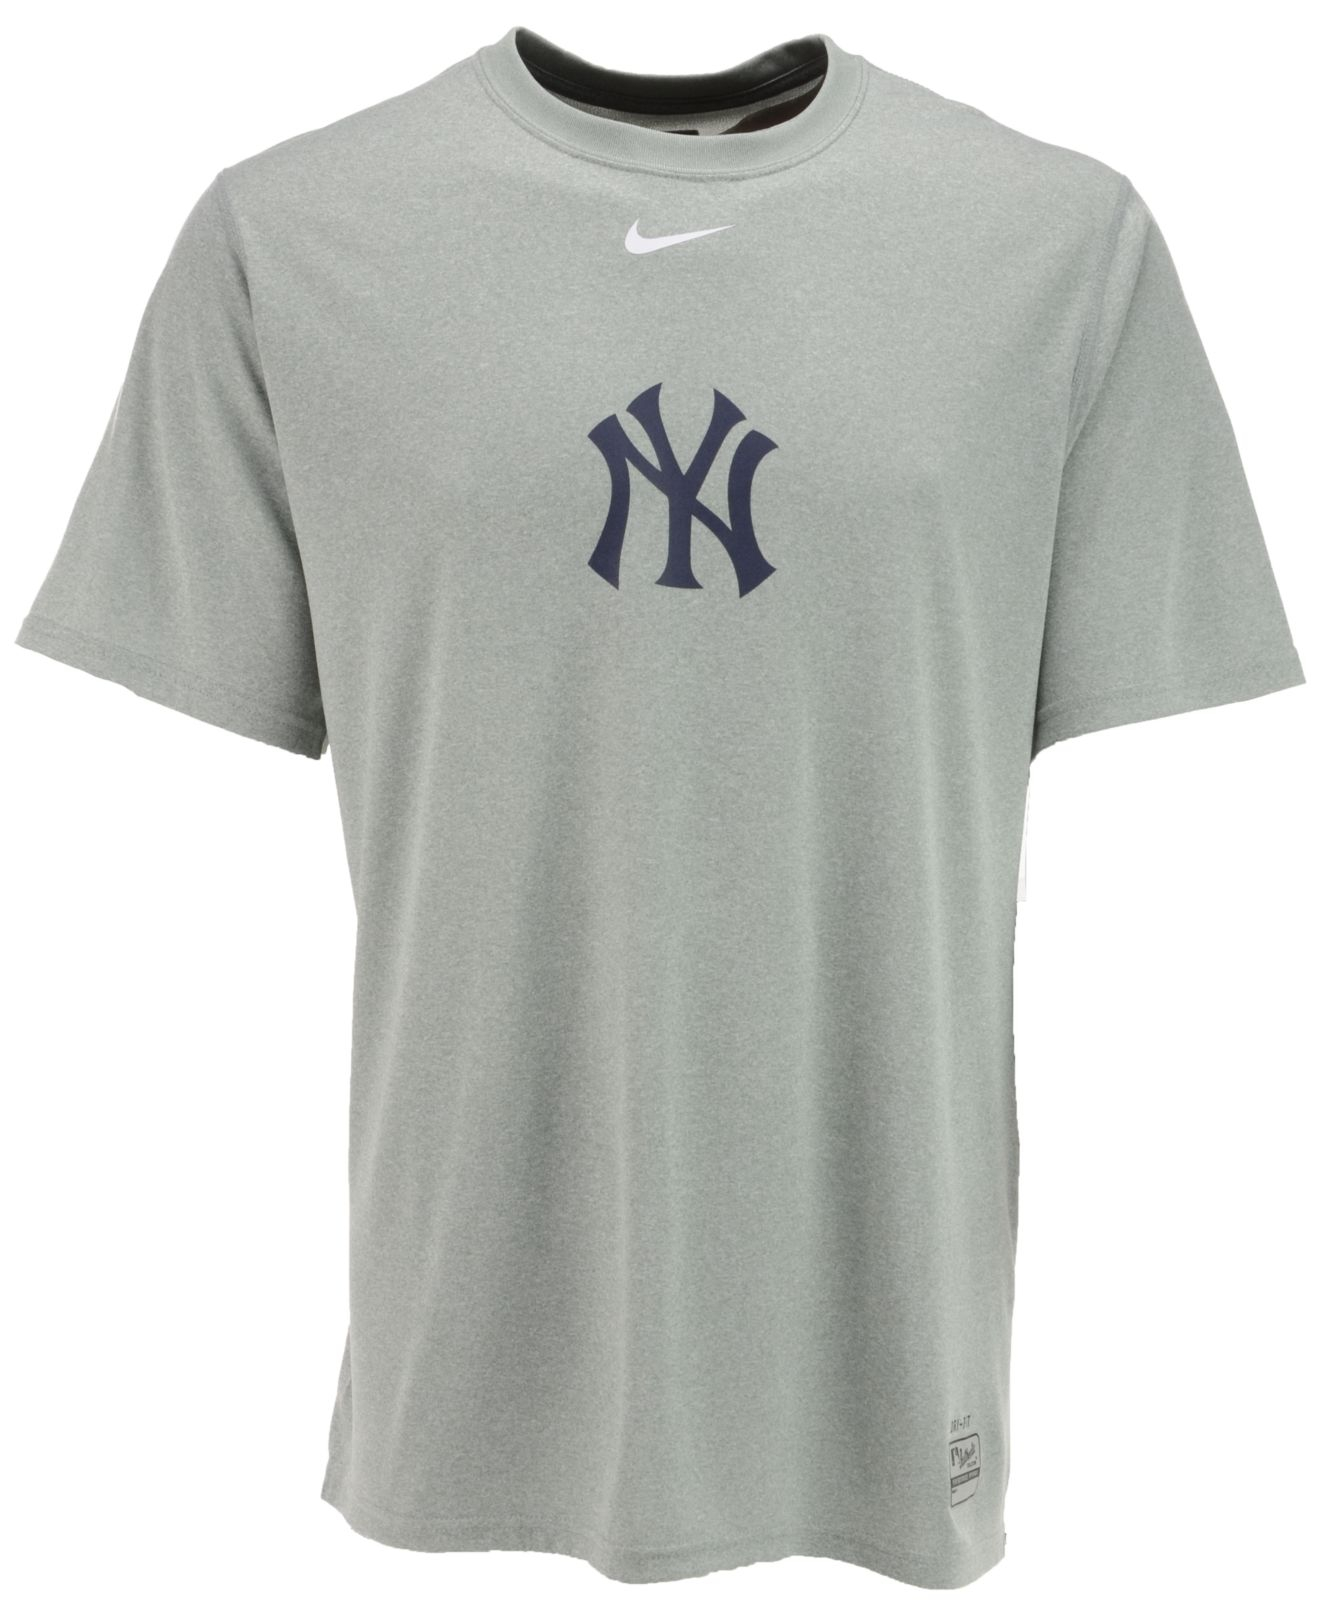 new product fd798 4f07f New York Yankees Dri Fit Team Issue T Shirt By Nike